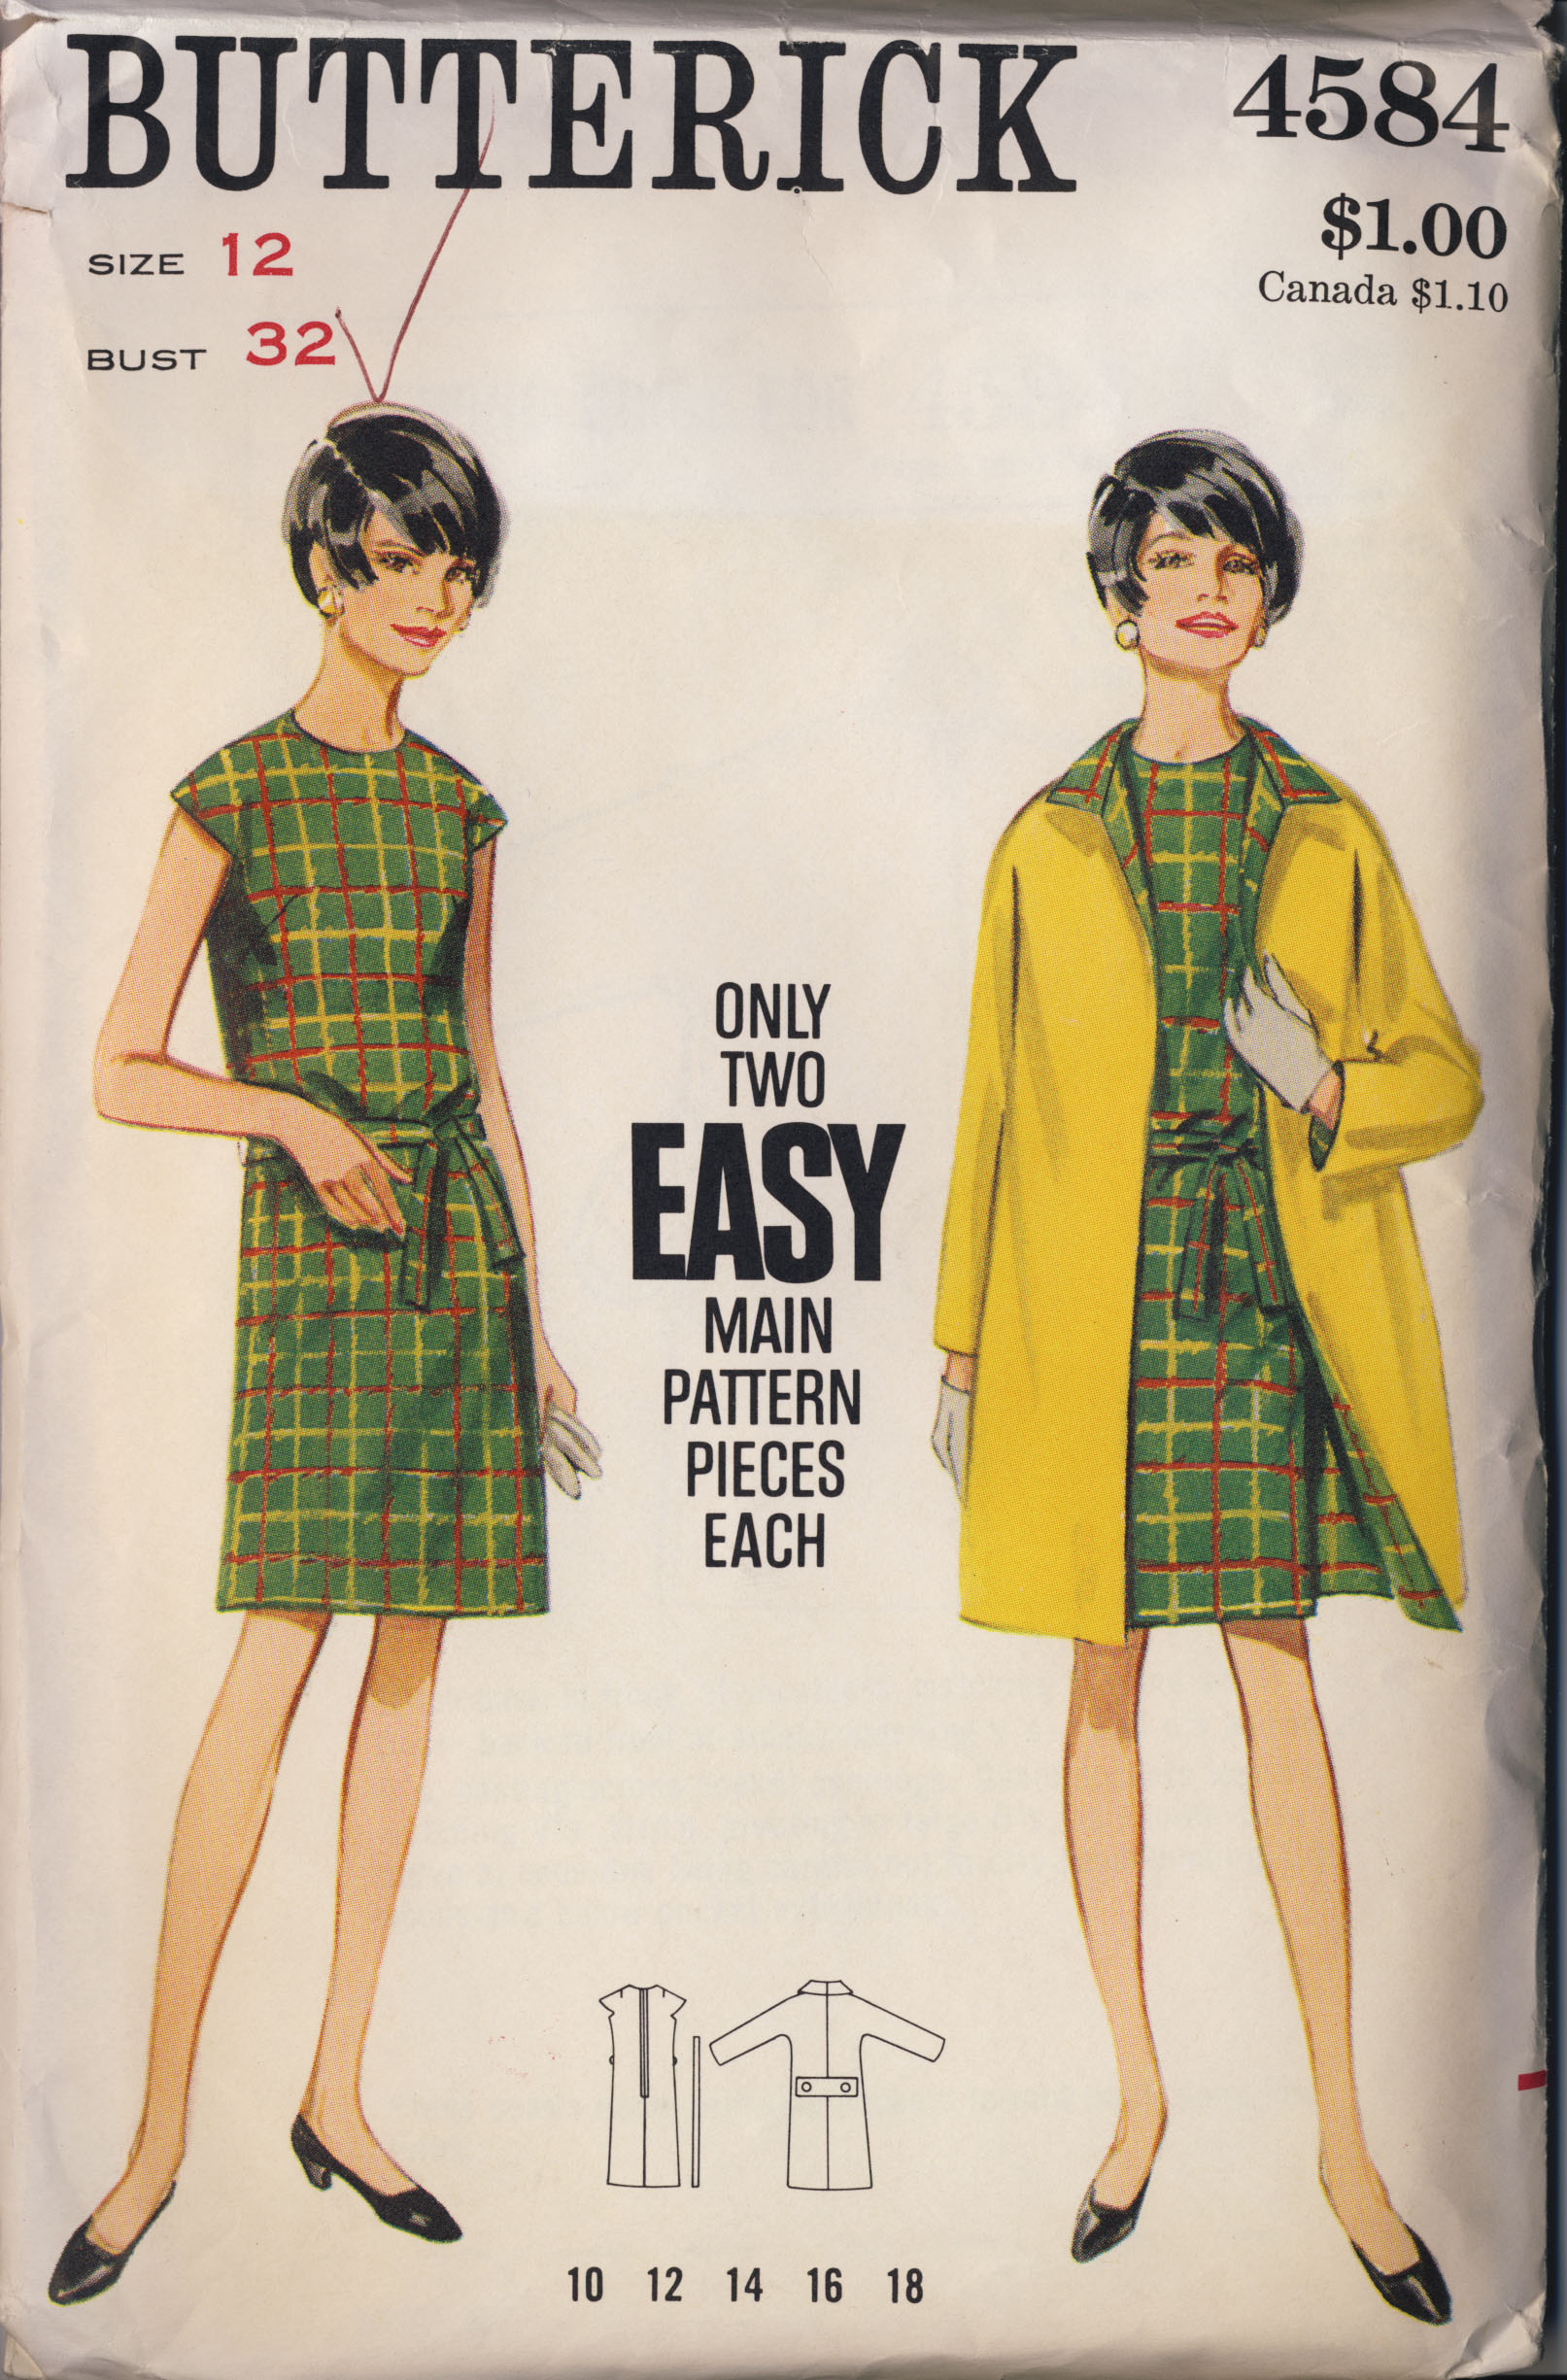 Vintage Sewing Patterns - Best of Antiques, Vintage, Collecting